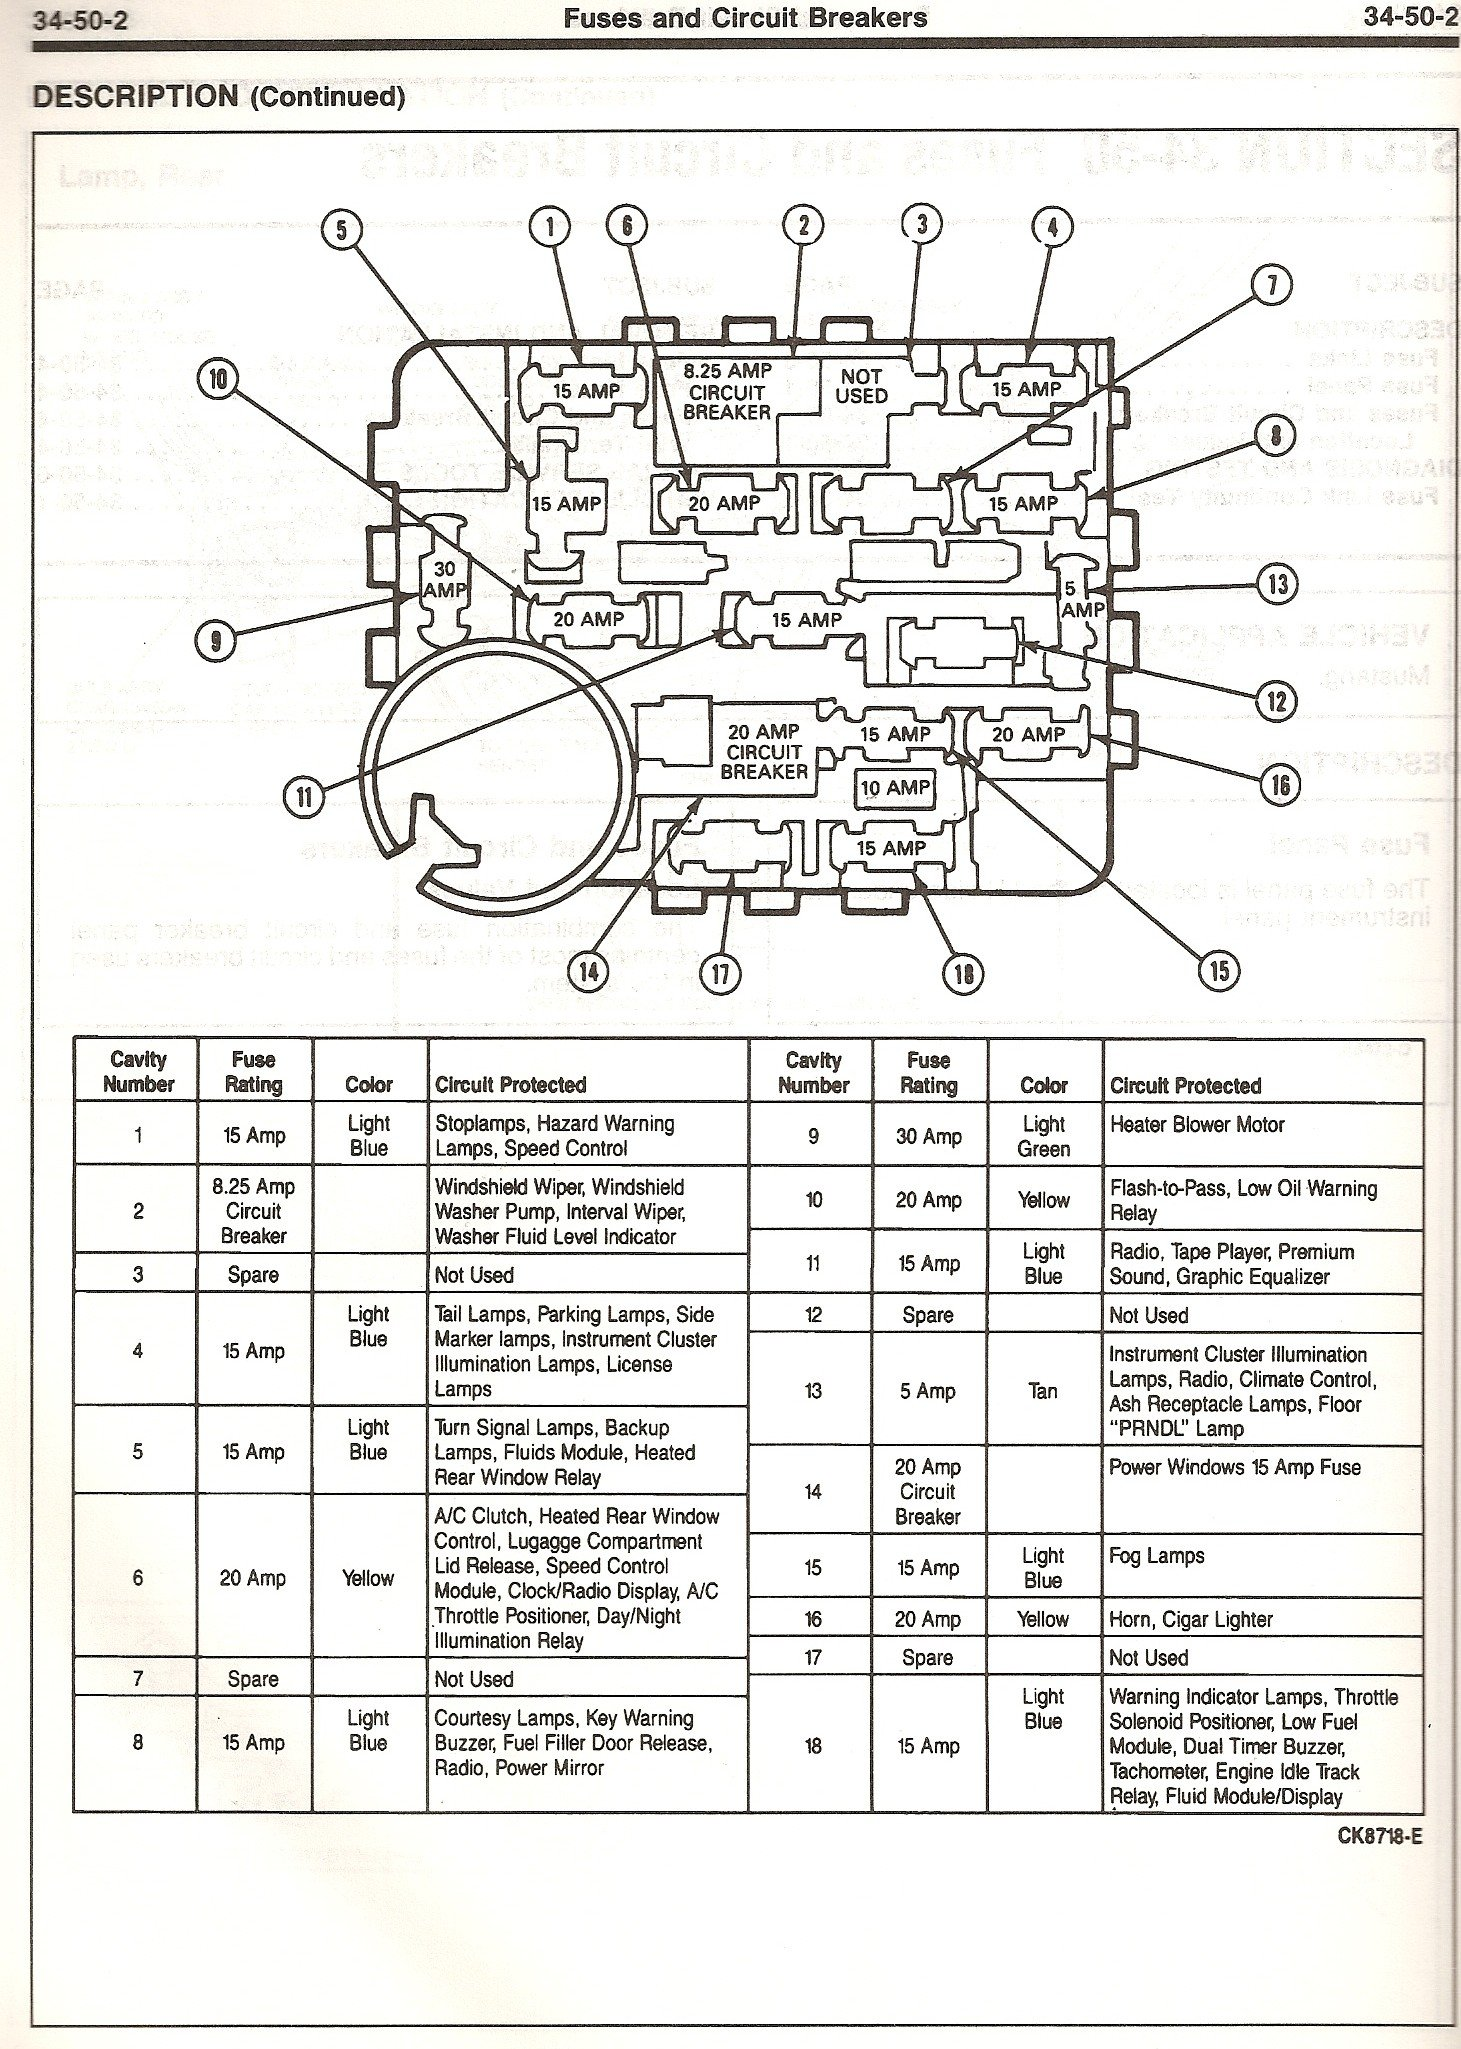 fuse box diagram for 1995 ford aerostar data wiring diagram 1994 Ford Aerostar Parts Diagram